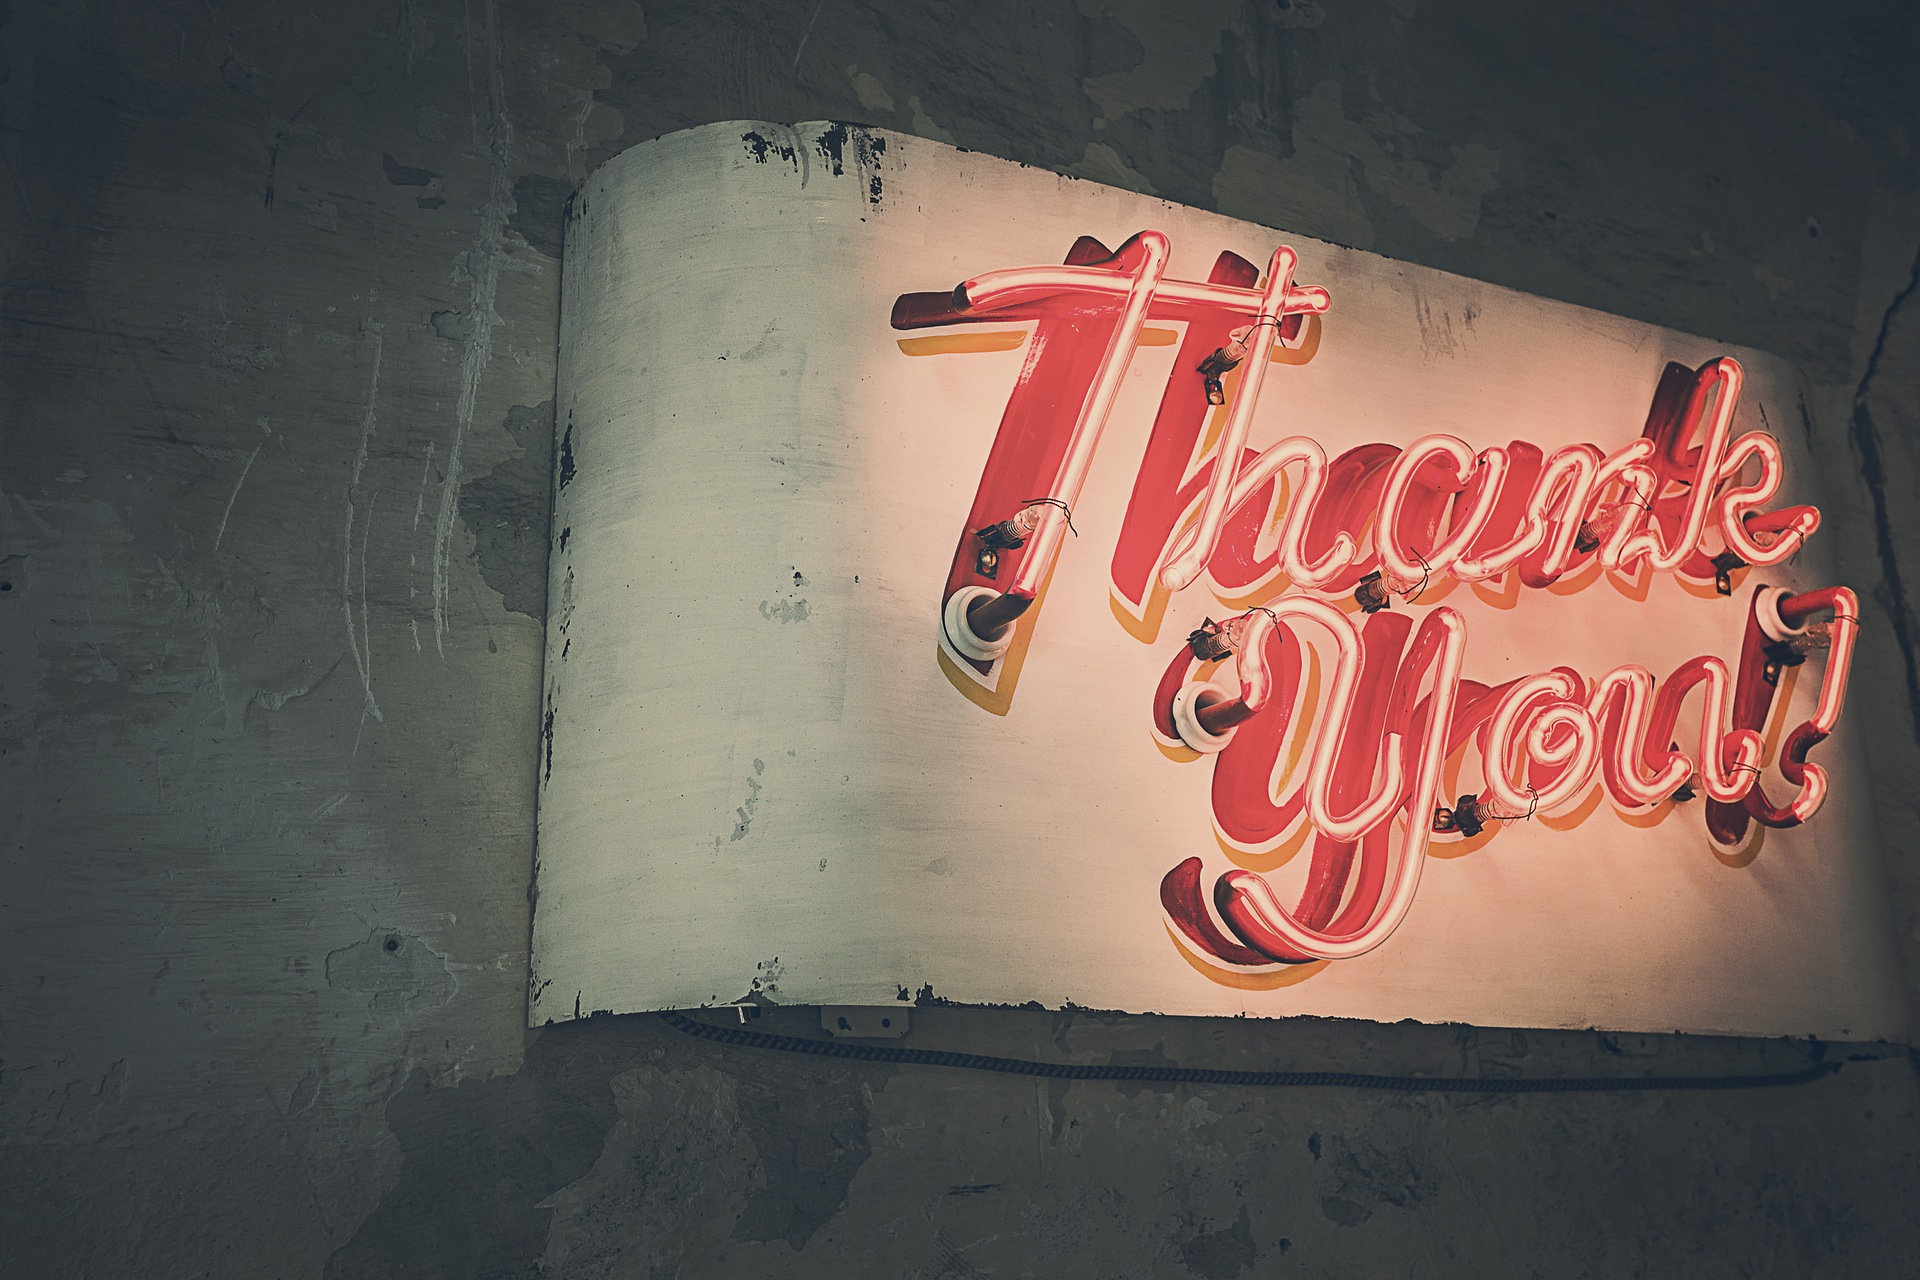 A unique, vintage red thank you typography plexiglass sign used in a business or restaurant as a promotional tool.